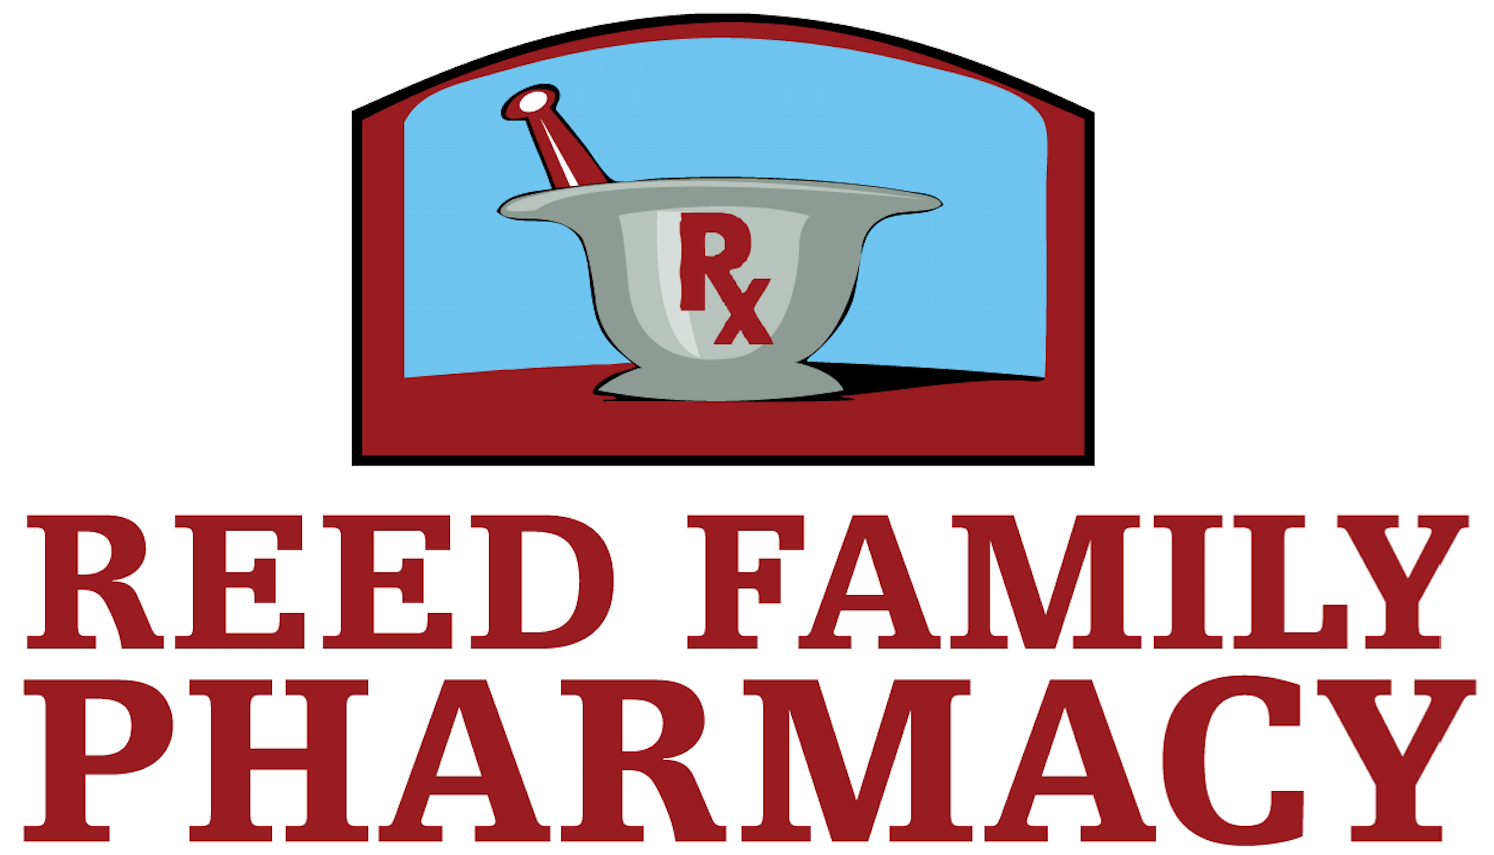 New - Reed Family Pharmacy